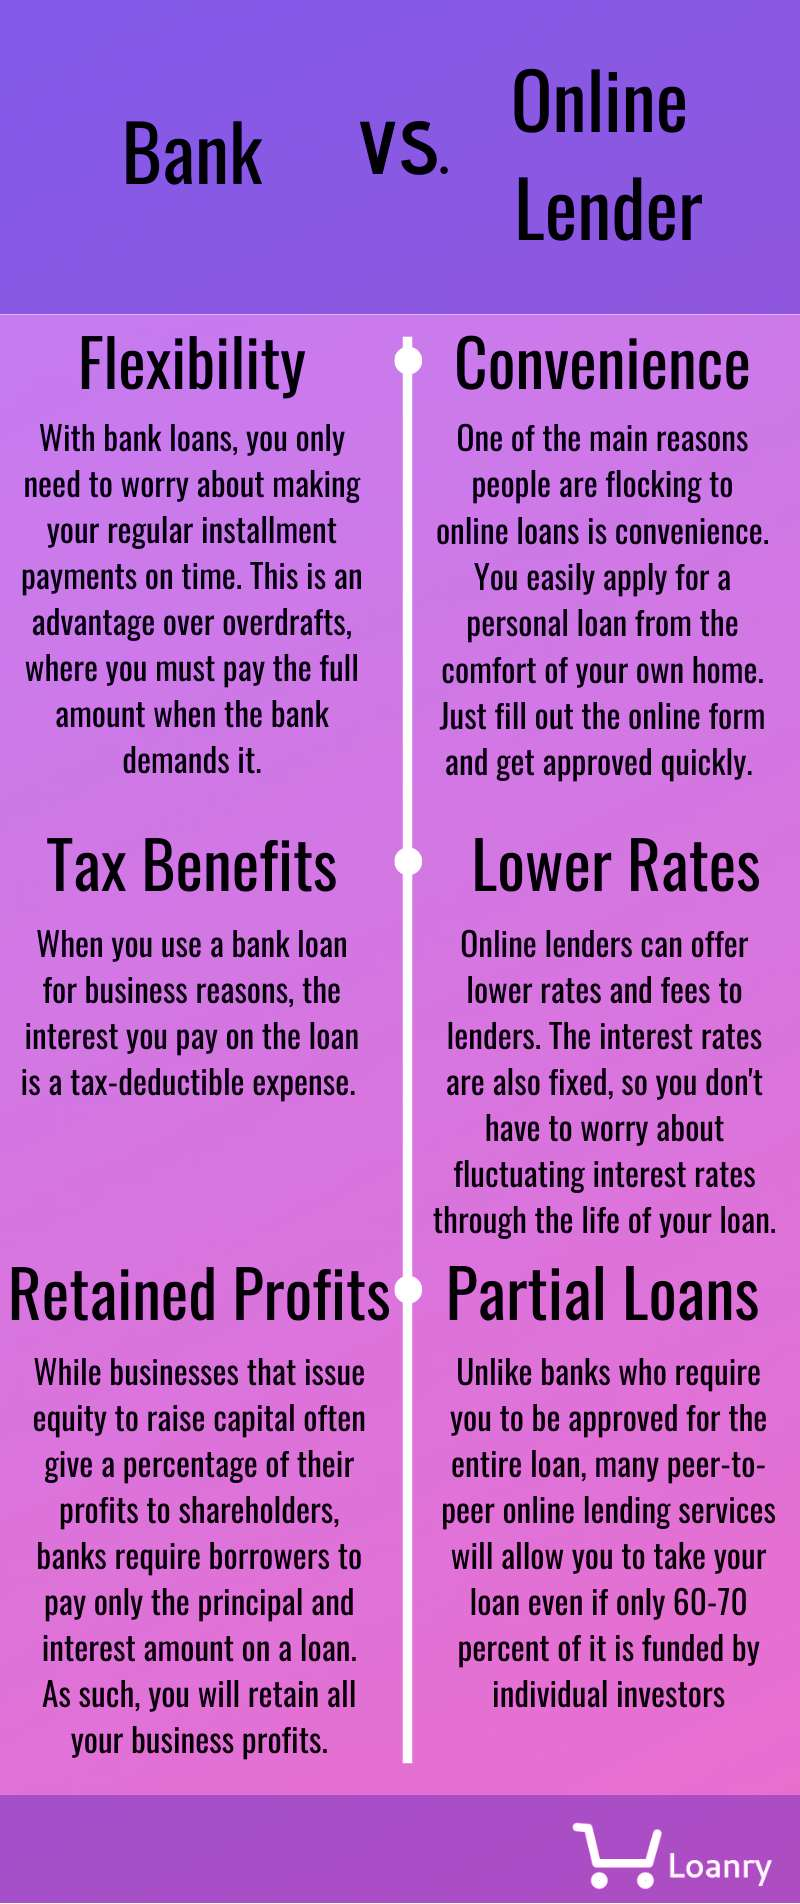 Bank vs online lender